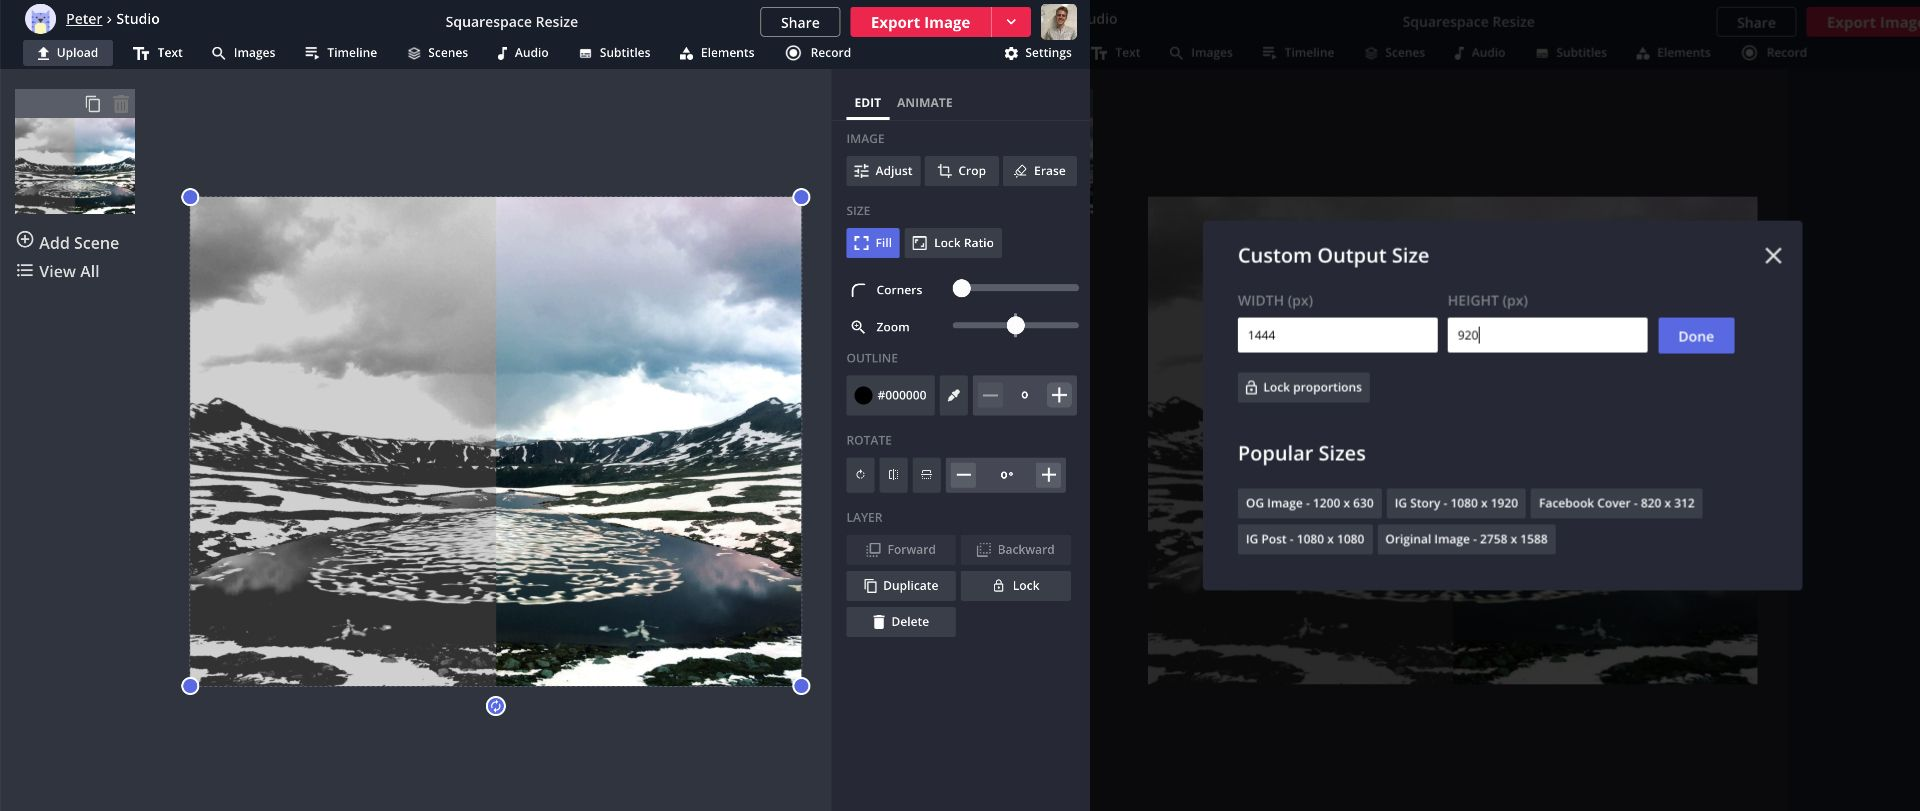 Screenshots from the Kapwing Studio, showing how to resize images to any aspect ratio.